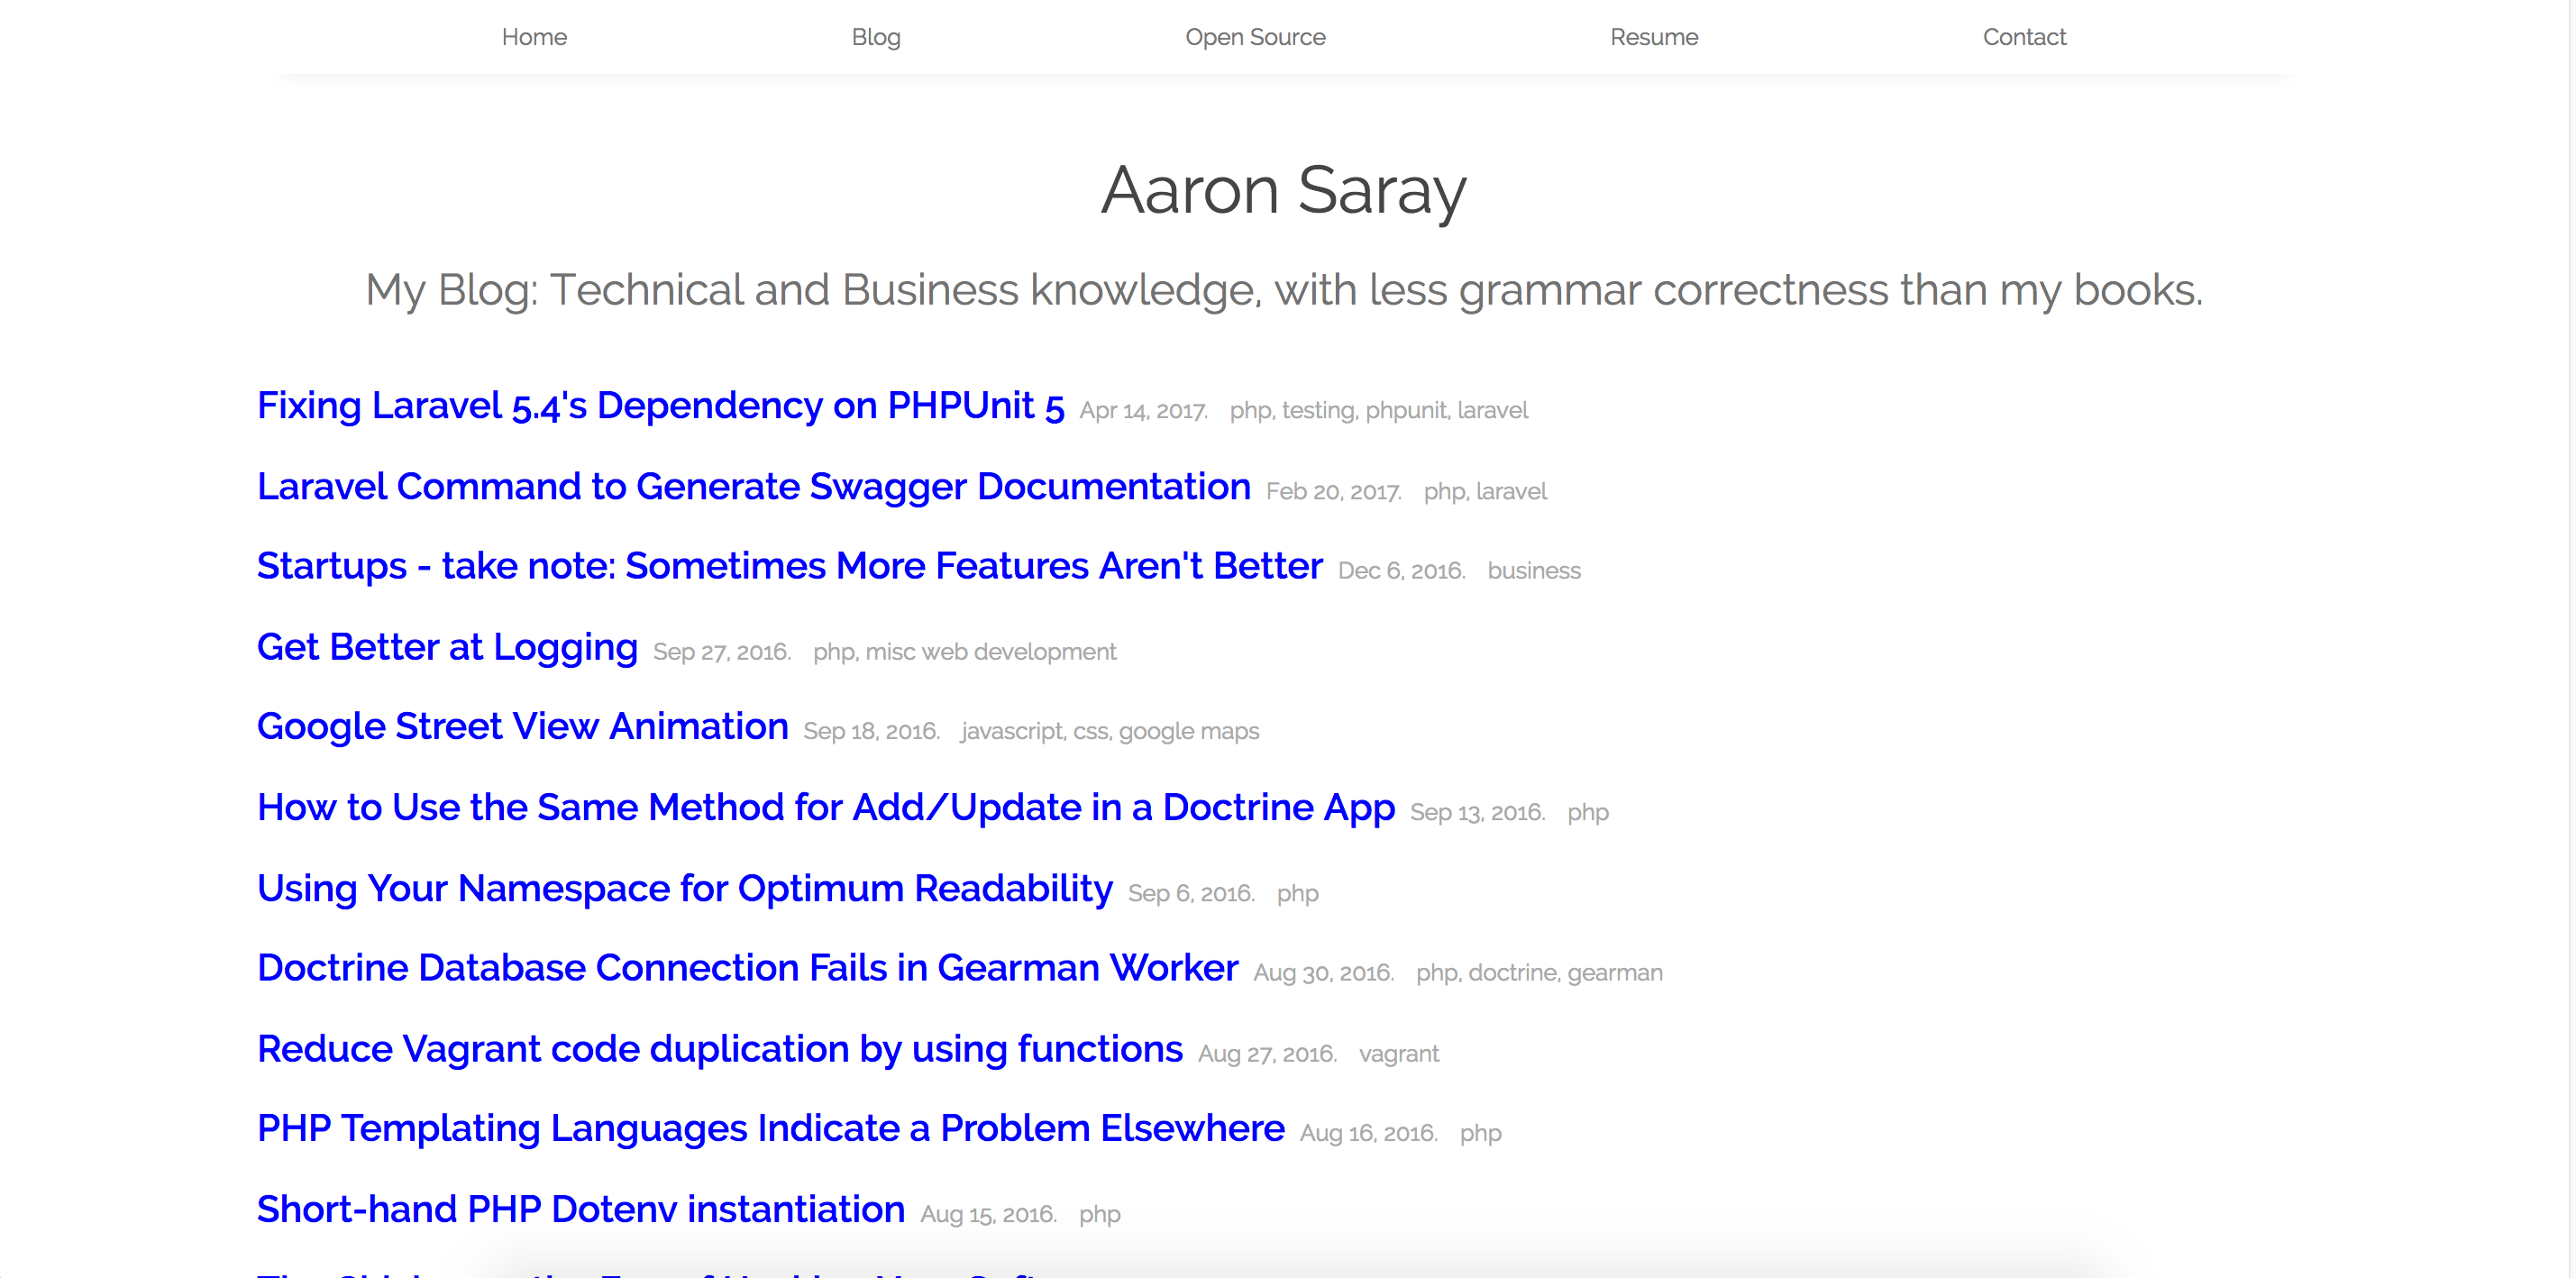 My site re-design: Simpler, faster, but less user-friendly?